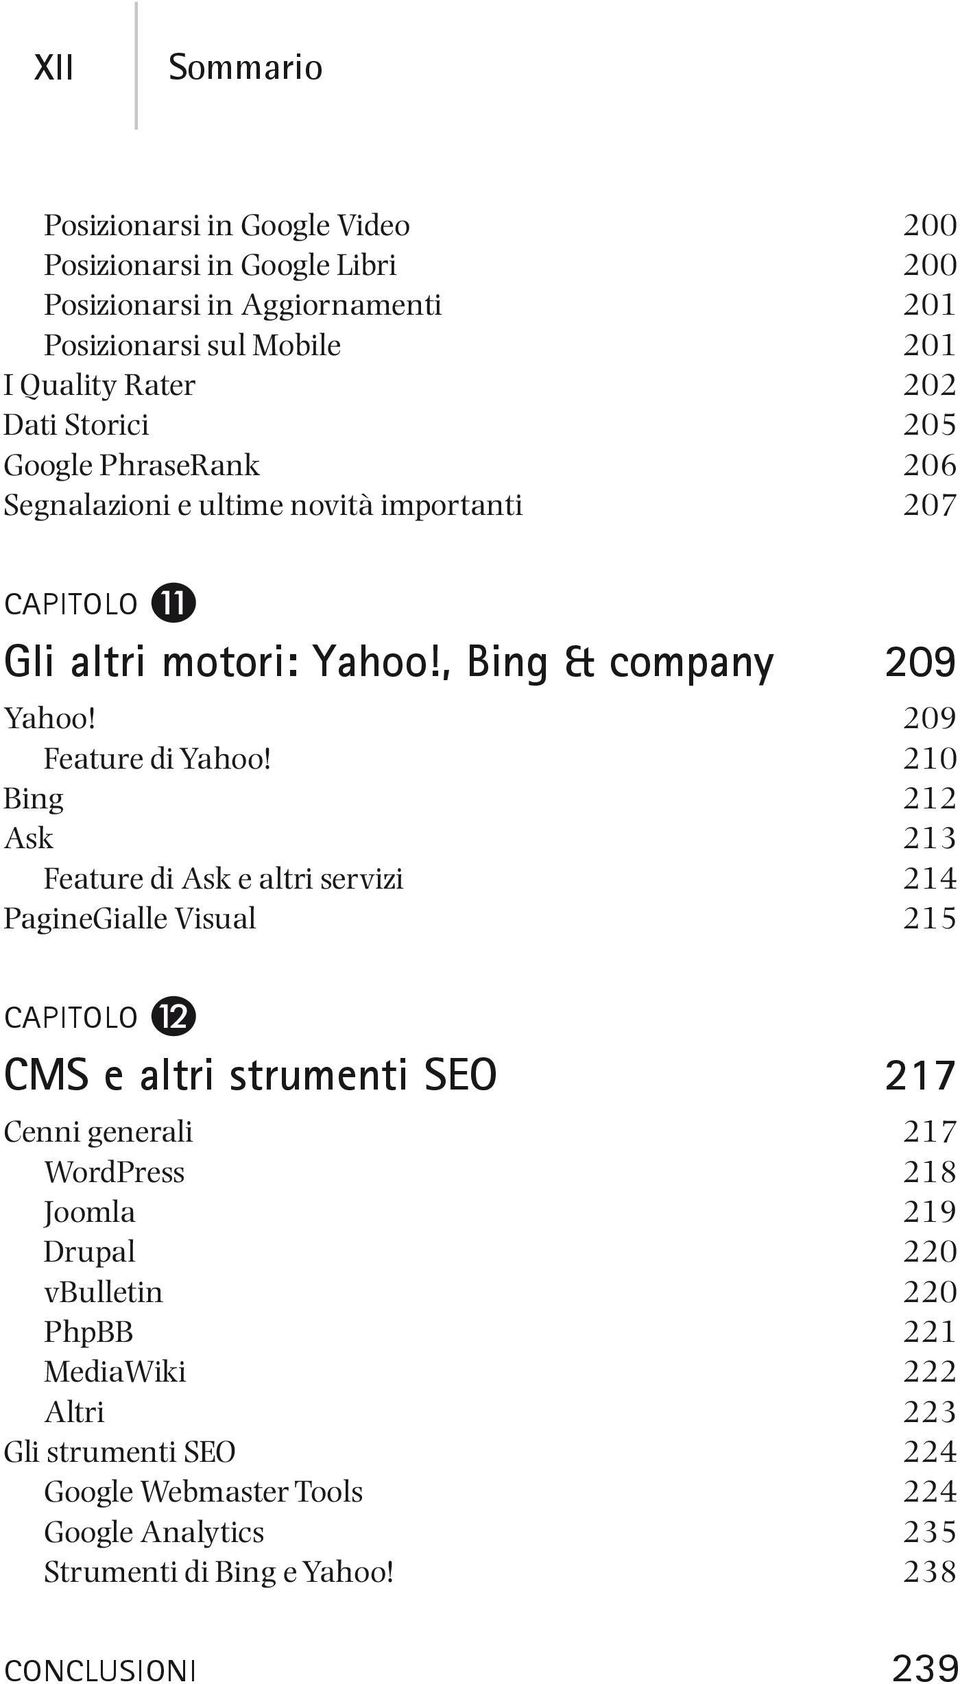 210 Bing 212 Ask 213 Feature di Ask e altri servizi 214 PagineGialle Visual 215 CMS e altri strumenti SEO 217 Cenni generali 217 WordPress 218 Joomla 219 Drupal